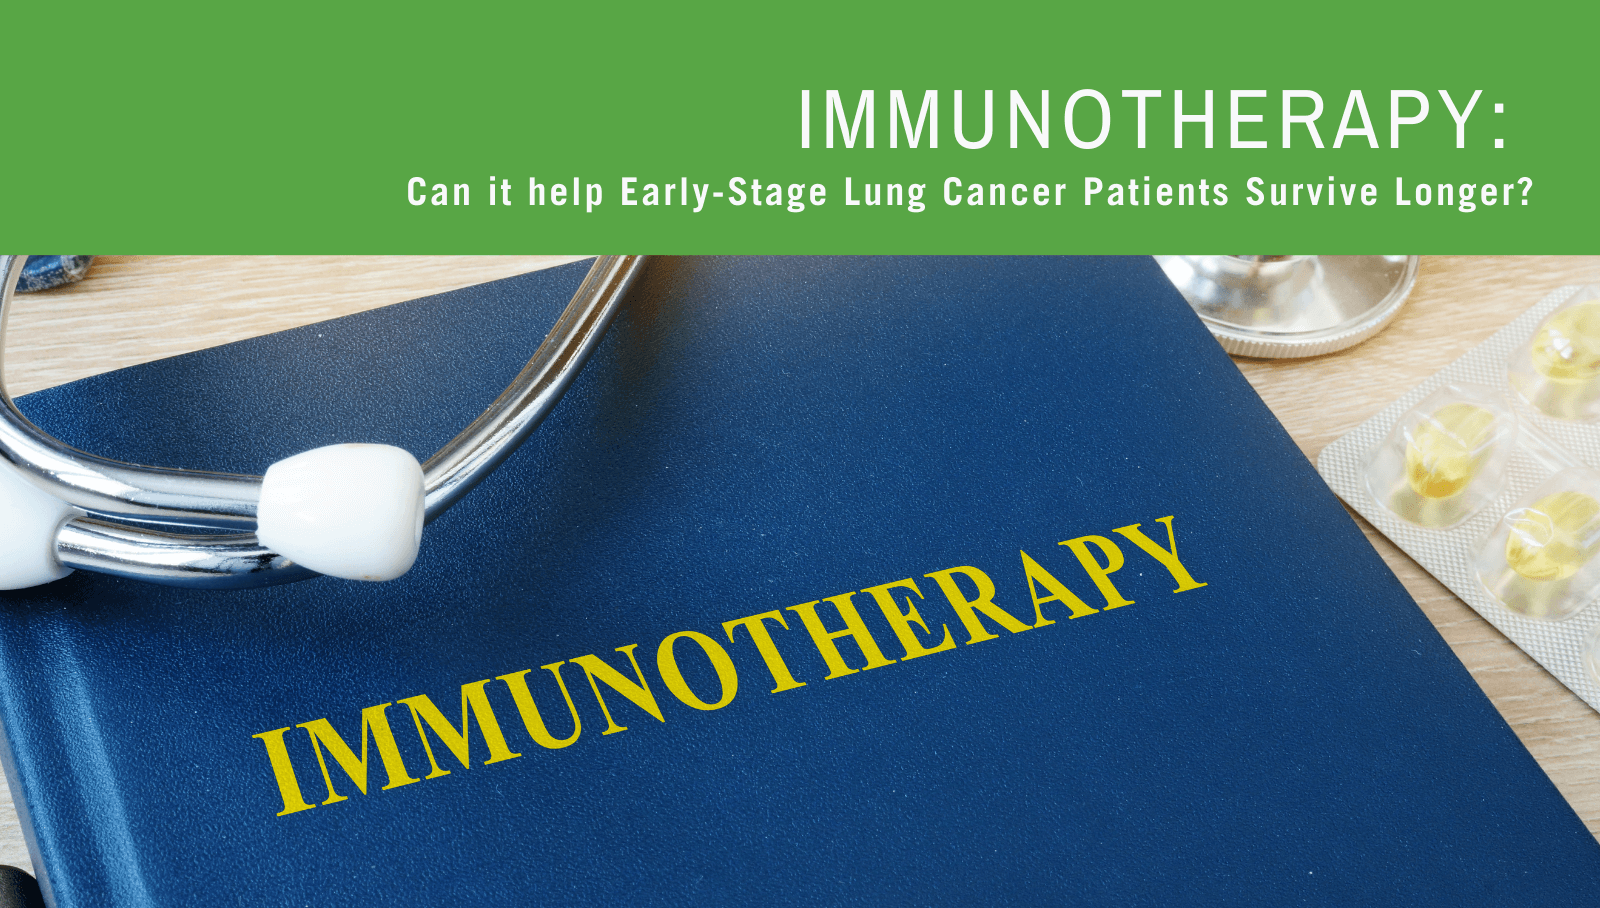 can immunotherapy help early-stage lung cancer patients survive longer?